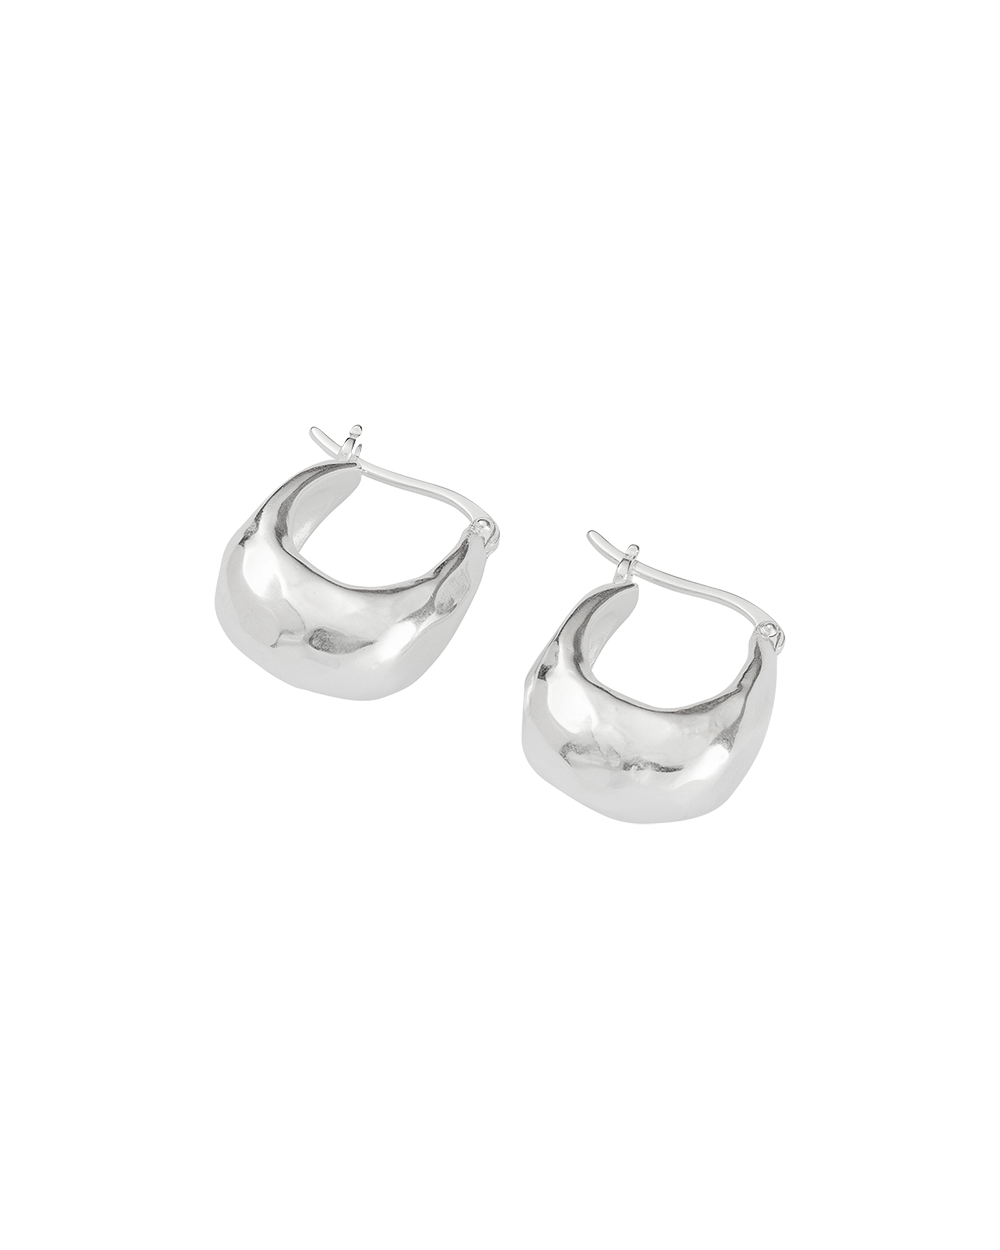 ESSENCE HOOPS SMALL (STERLING SIlVER) - SIDE